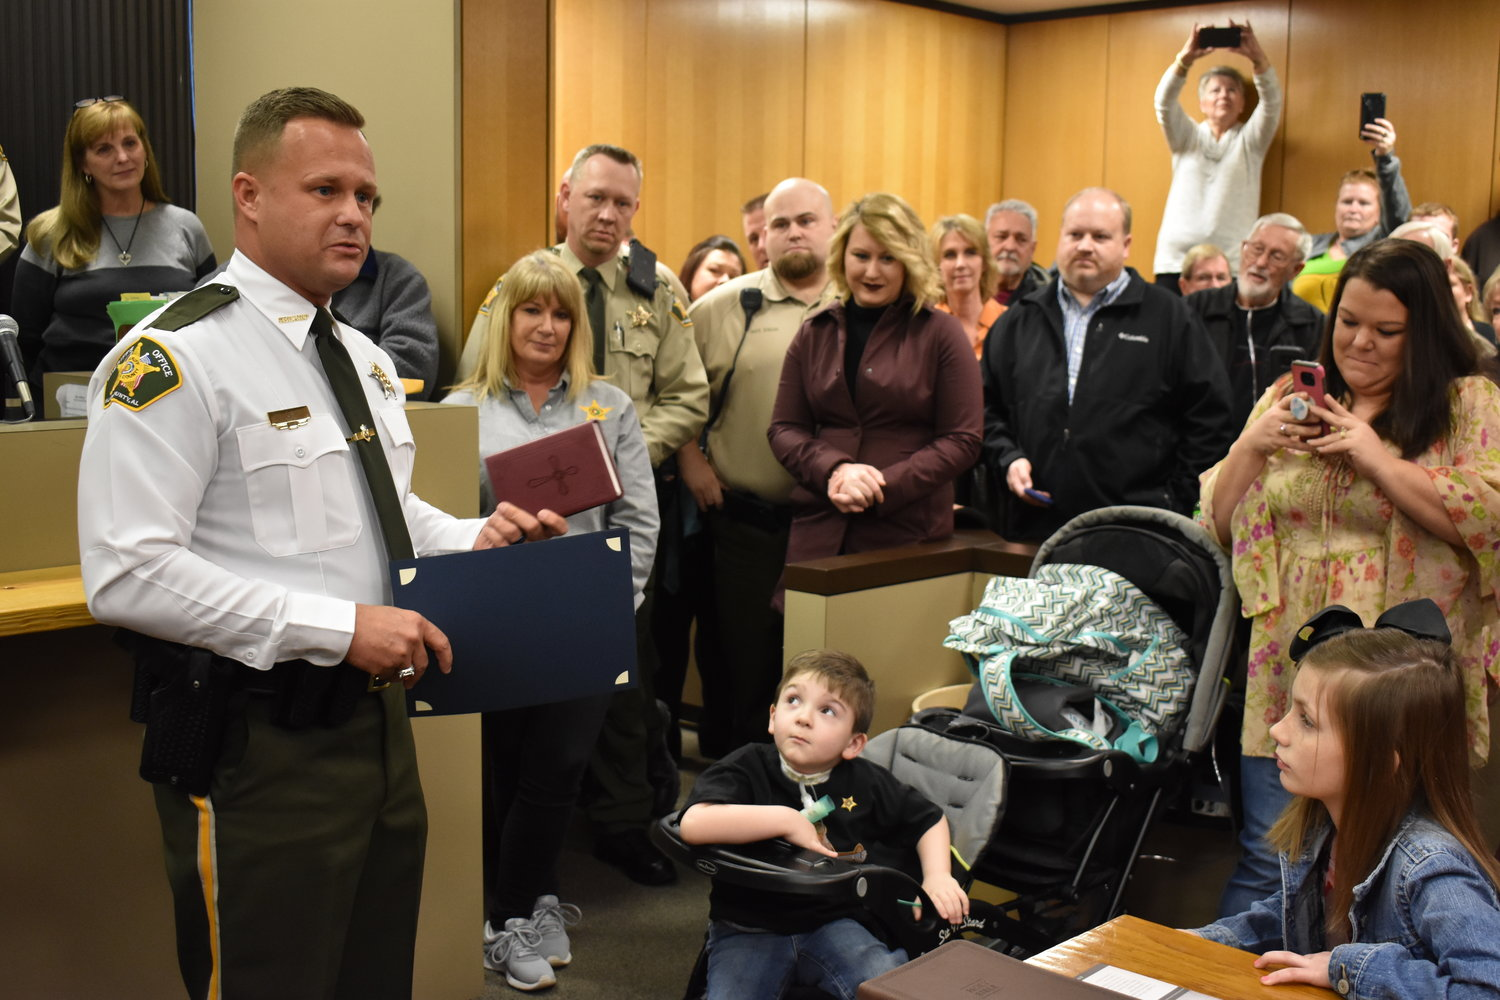 Walker County Sheriff Nick Smith, shown at his January 2019 swearing in ceremony, opted out of the supernumerary retirement system at the time. County voters will decide whether to allow him and others to participate in the state retirement system, which could save the county as much as $4 million in years to come.